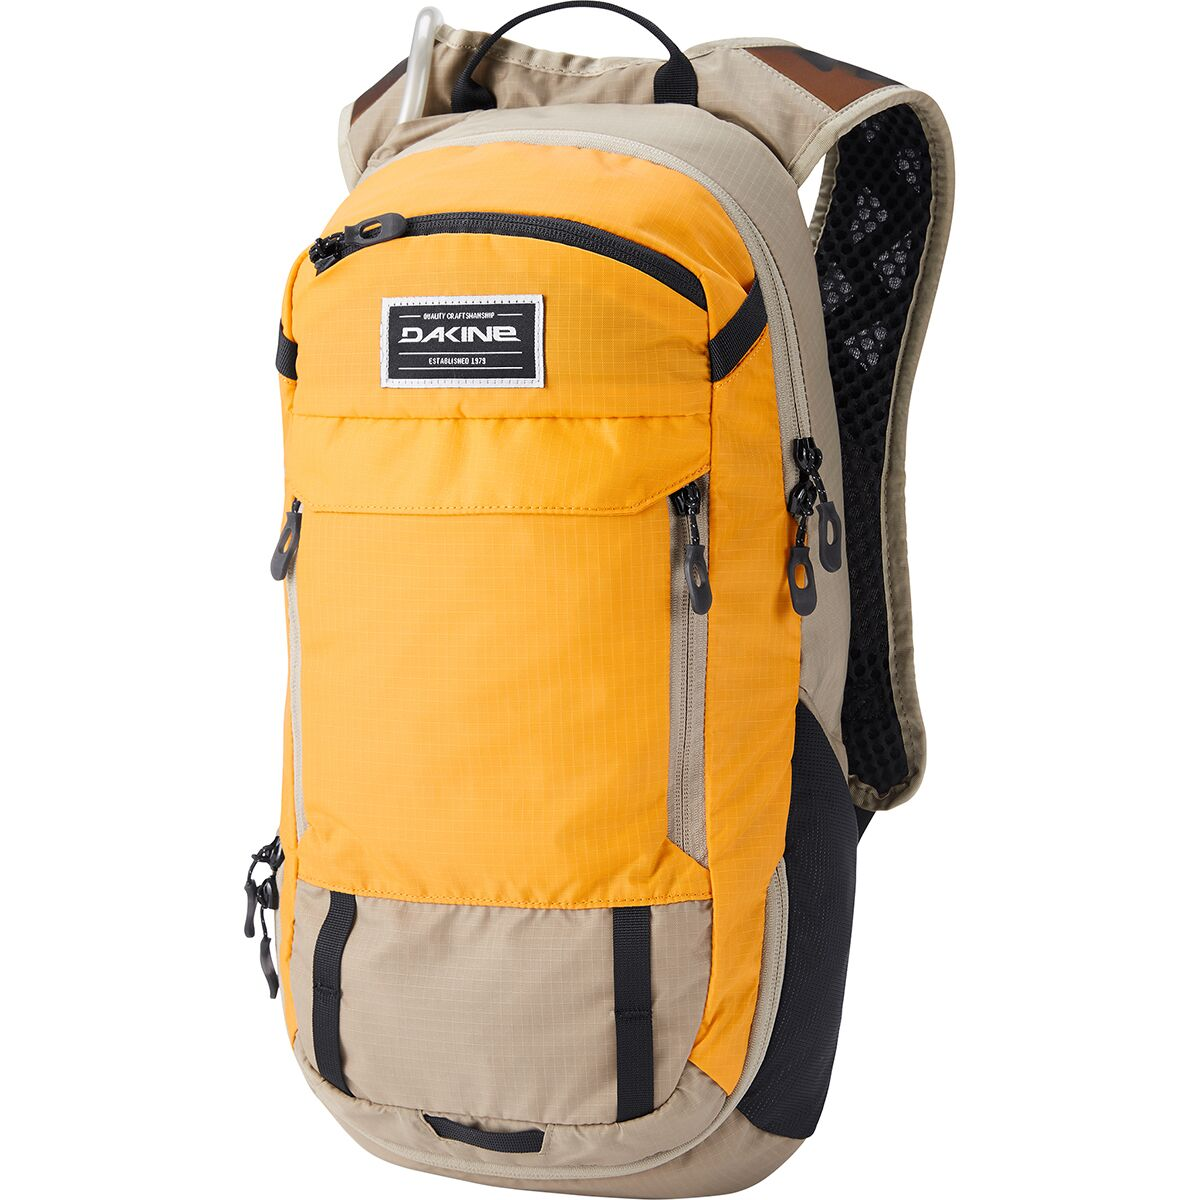 photo: DaKine Syncline 12L Hydration Pack hydration pack